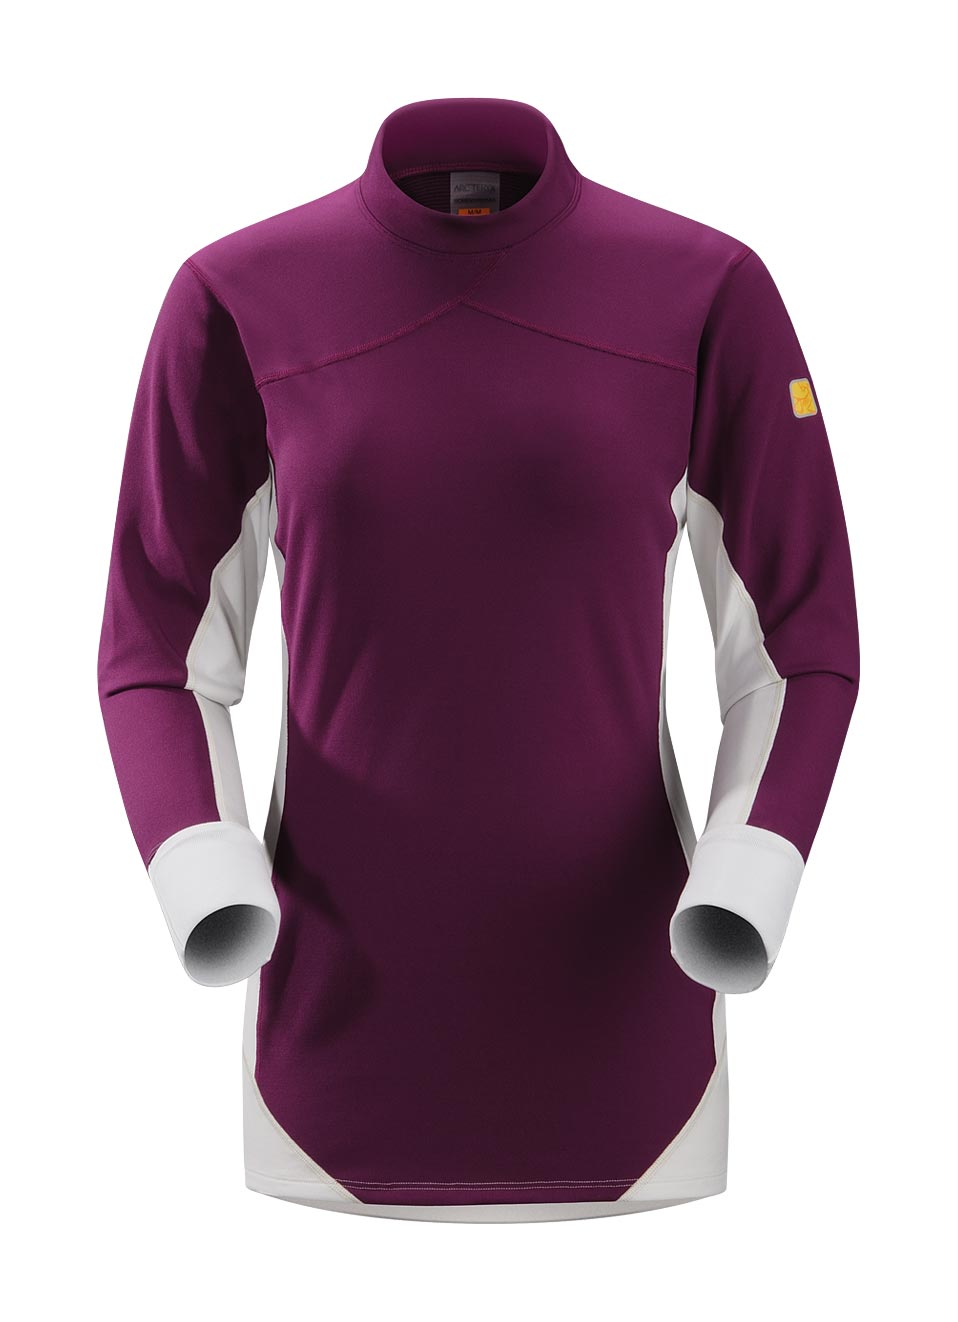 Arcteryx Purpura Phase SV Comp LS